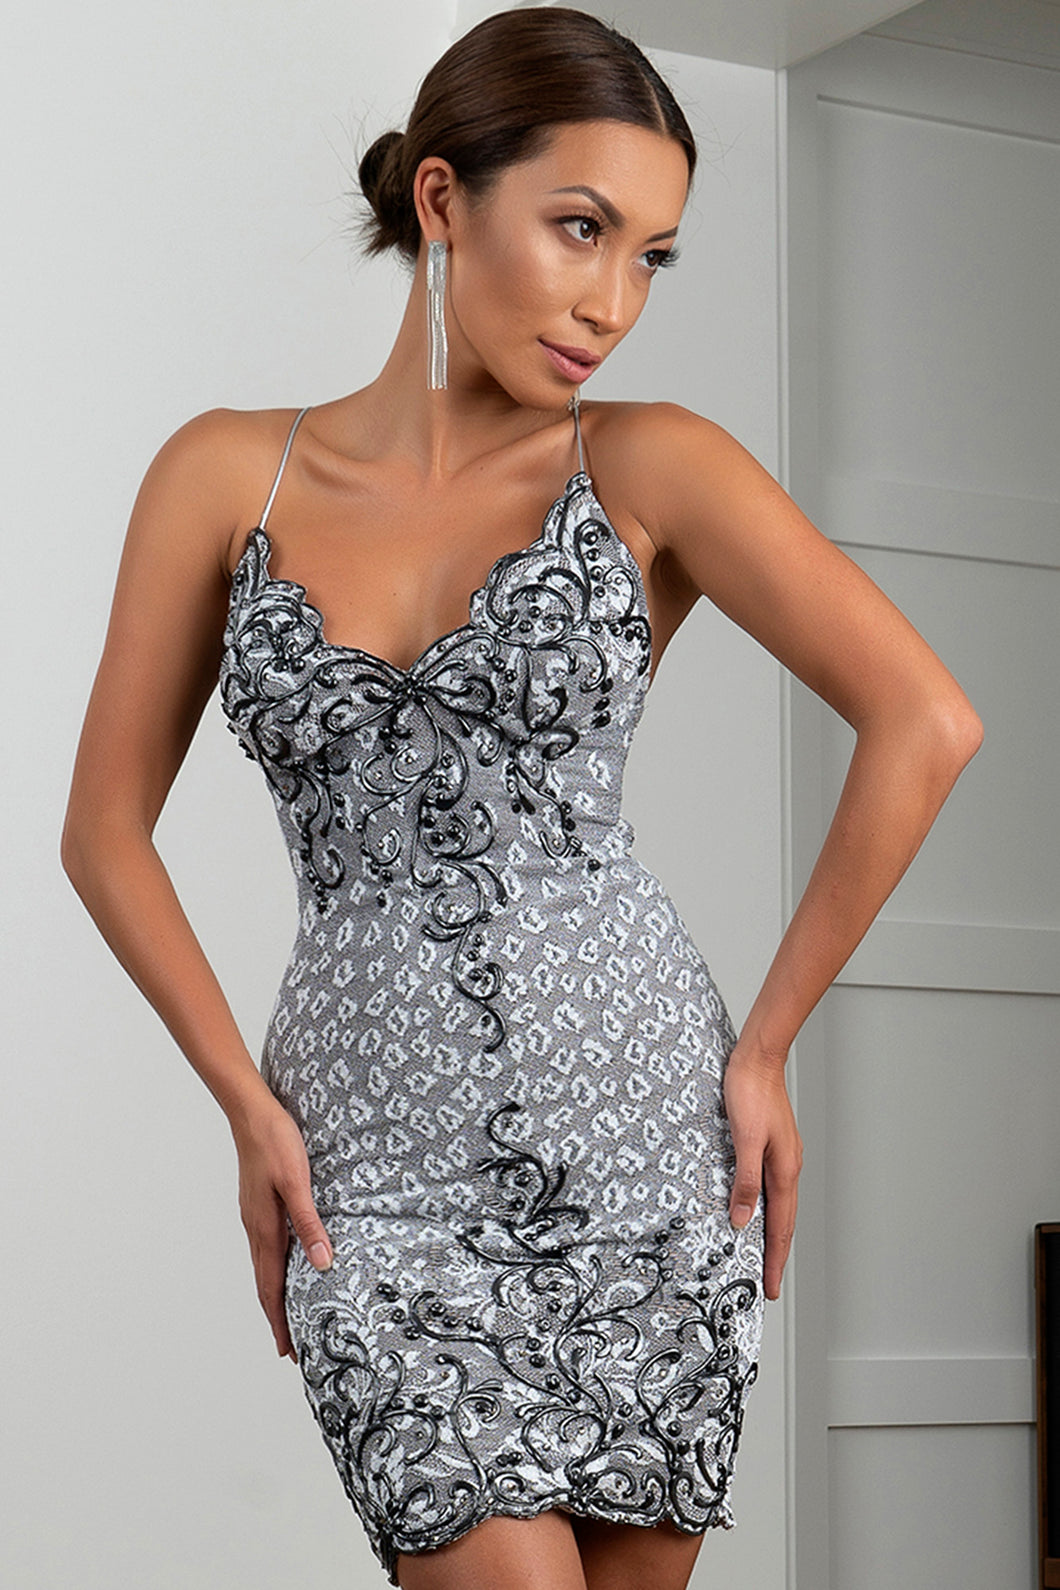 Channy Stretch Lace Grey Short Cocktail Dress - BACCIO Couture